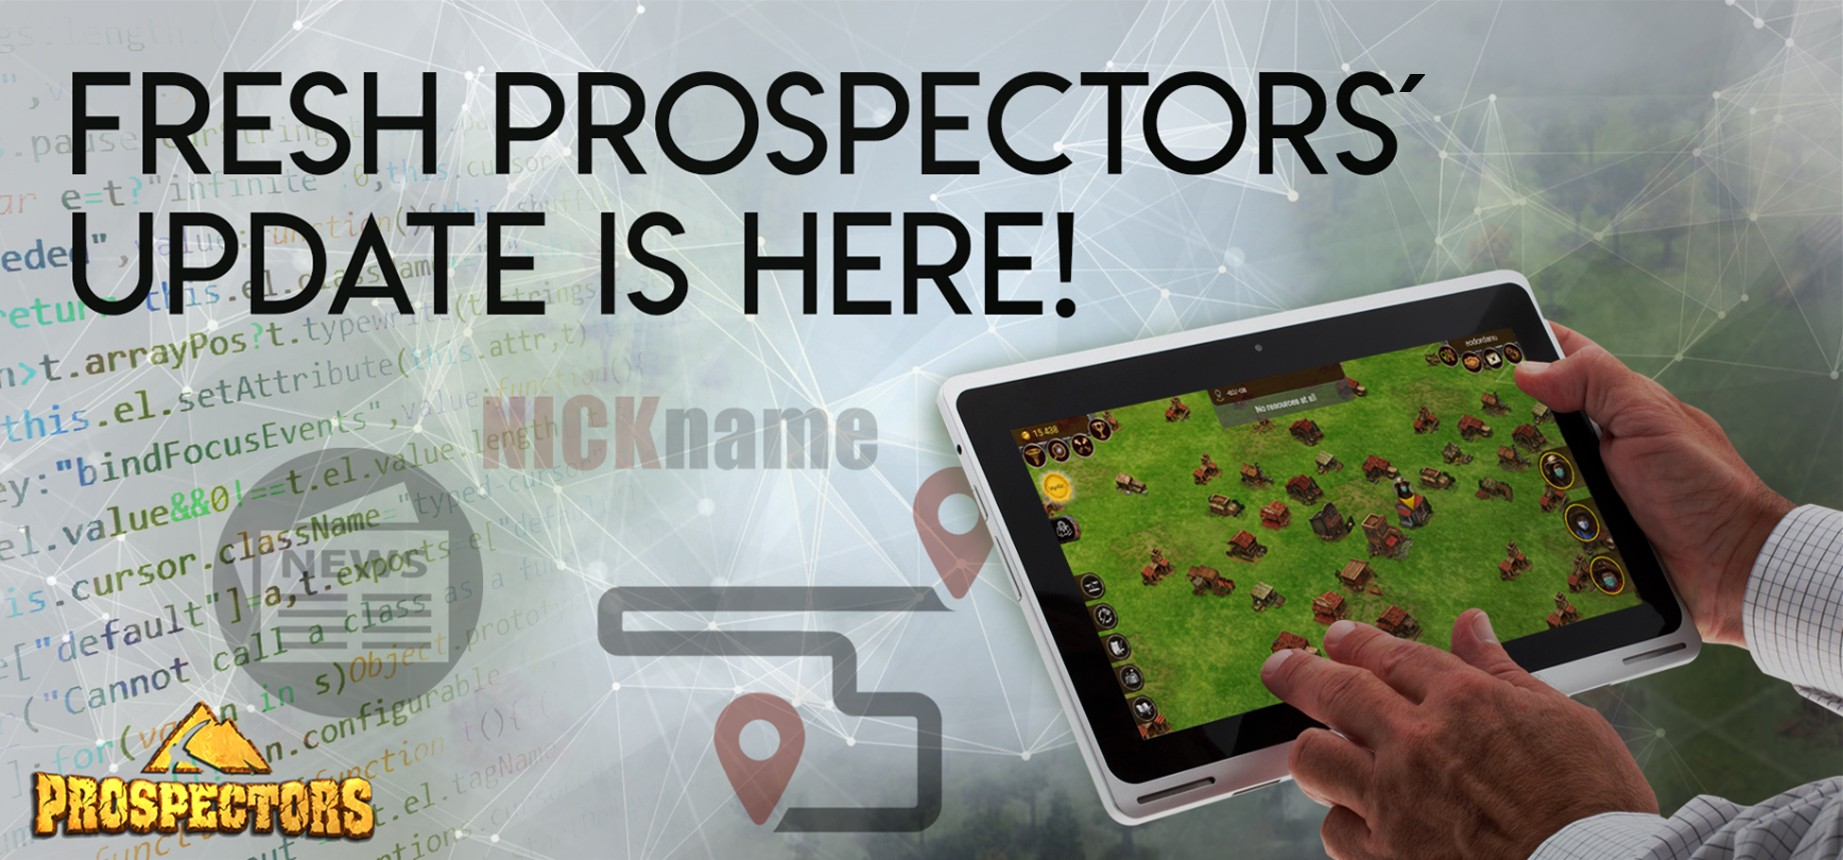 Nicknames, live news, and more — fresh Prospectors' update is here!